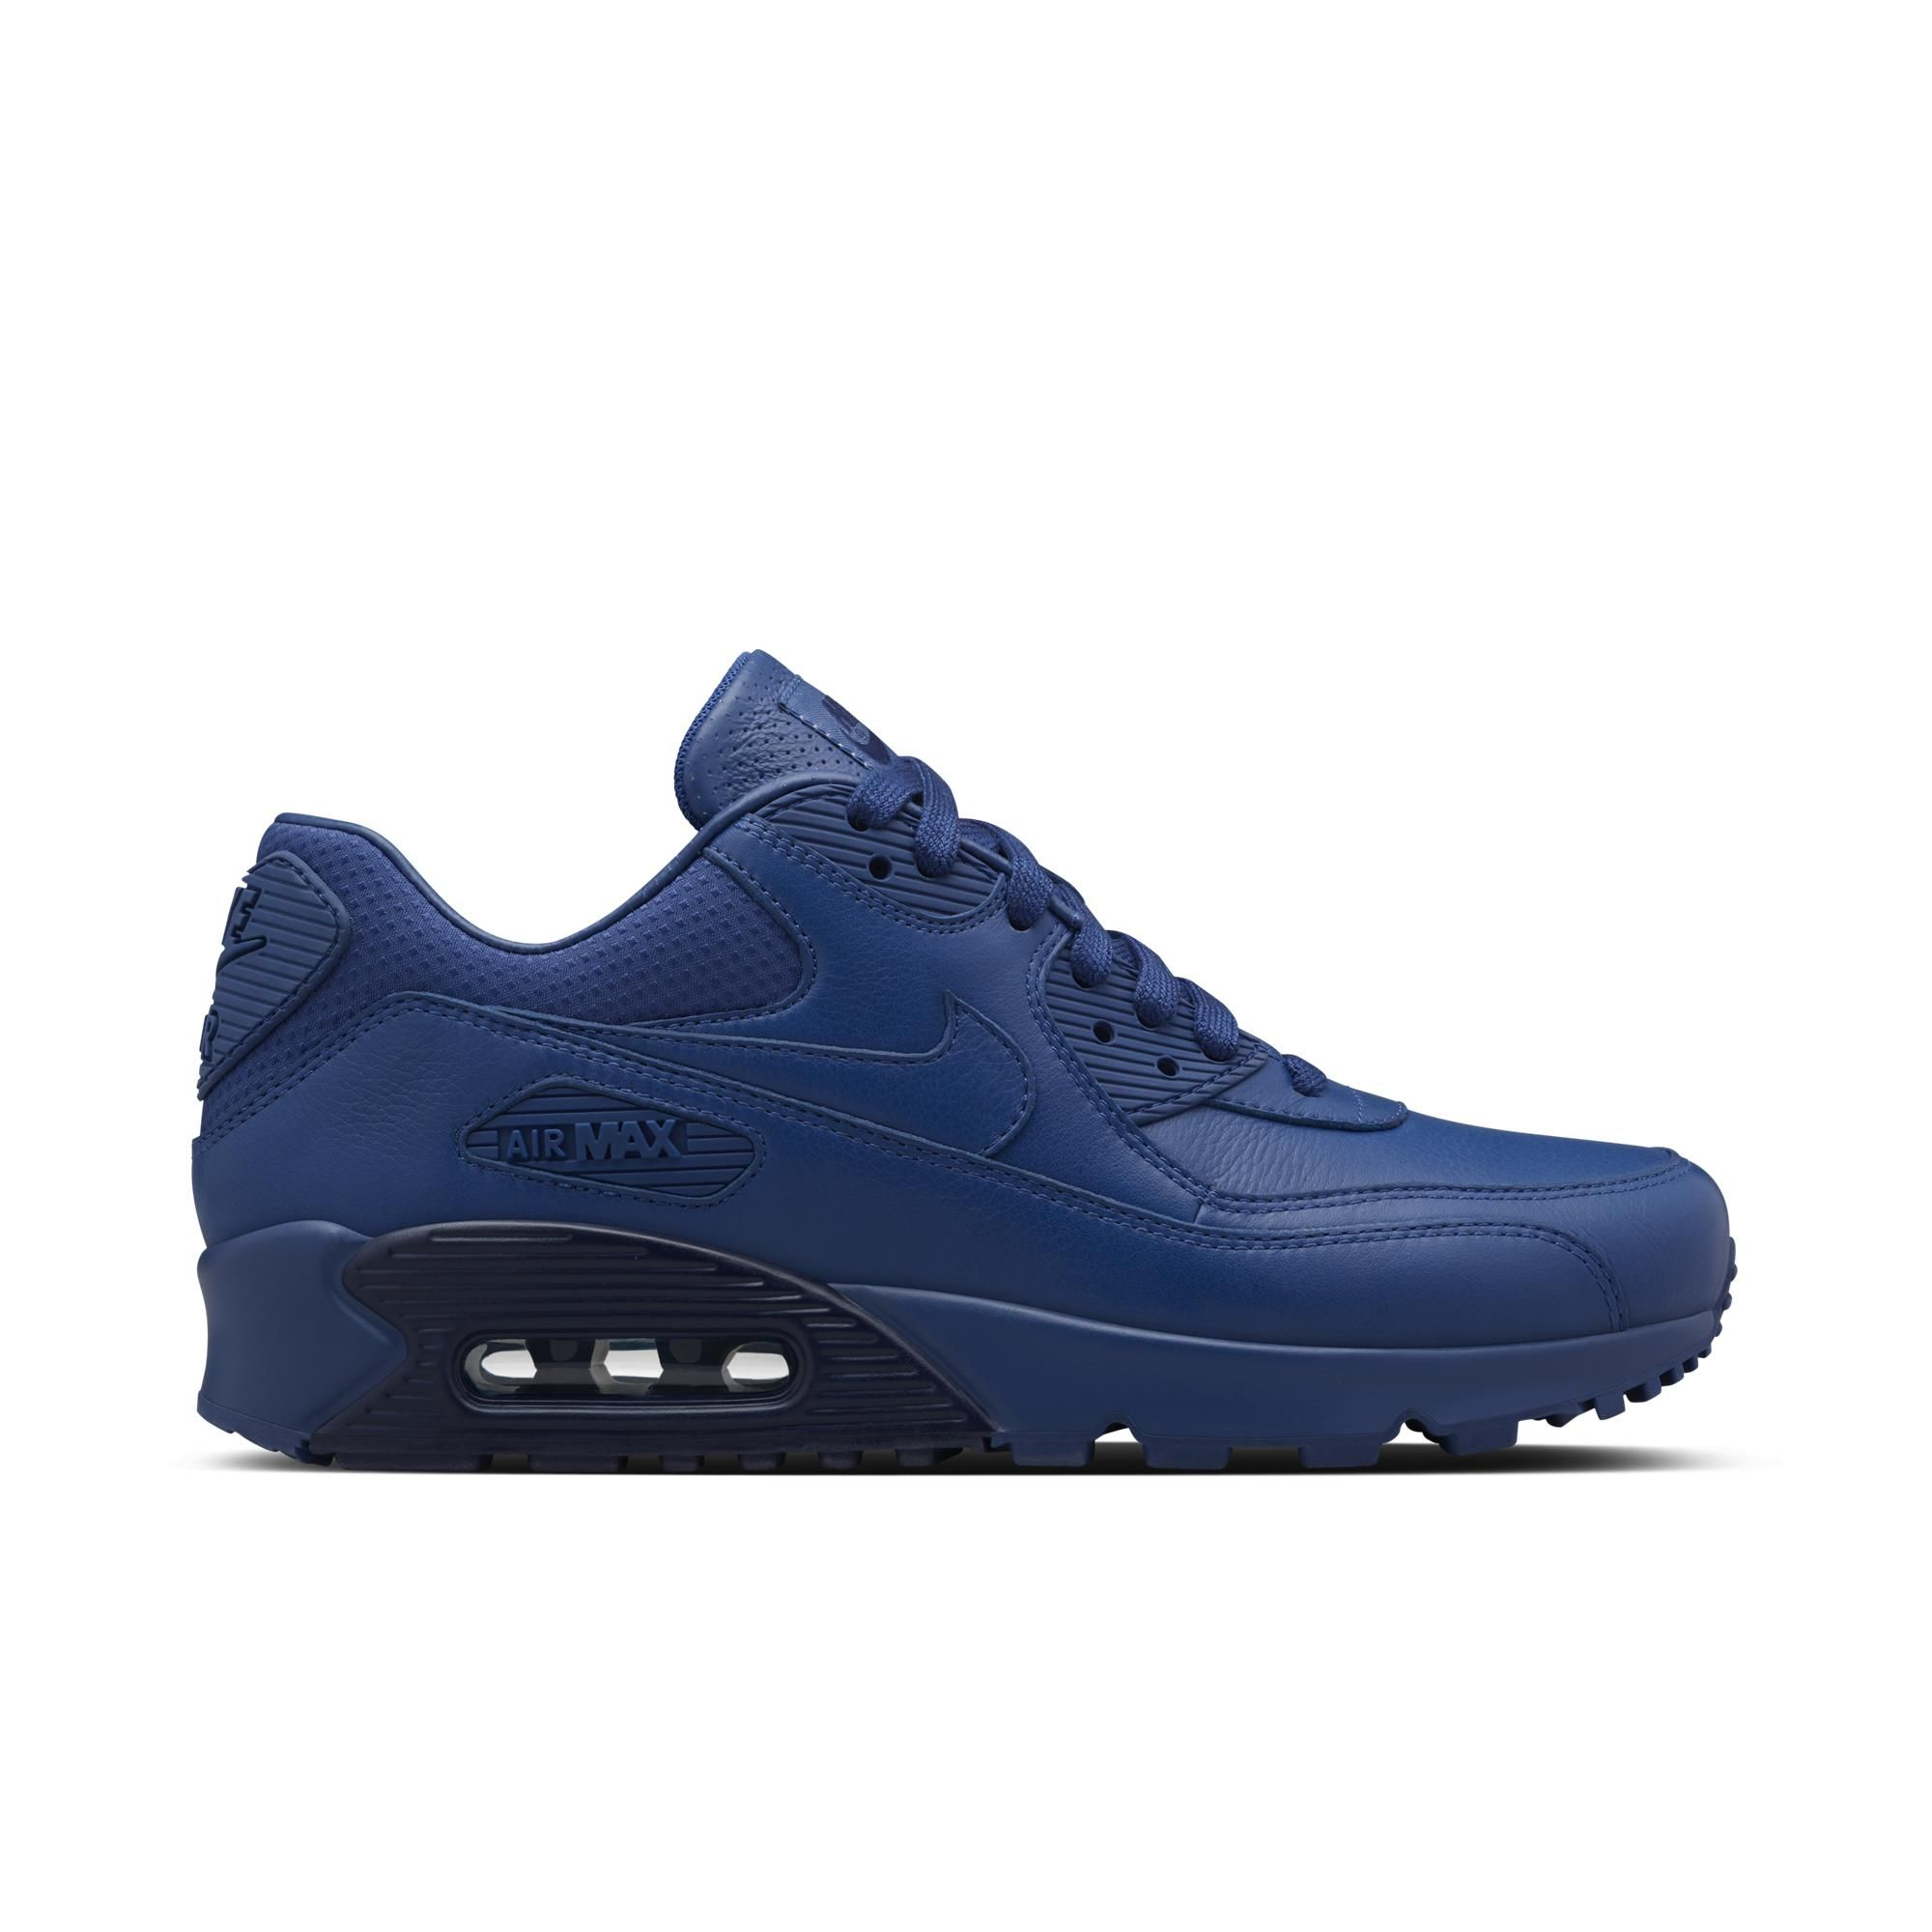 ahorre hasta 80% super calidad entrega gratis Tênis Nikelab Air Max 90 Pinnacle Feminino | BT | Tênis air ...